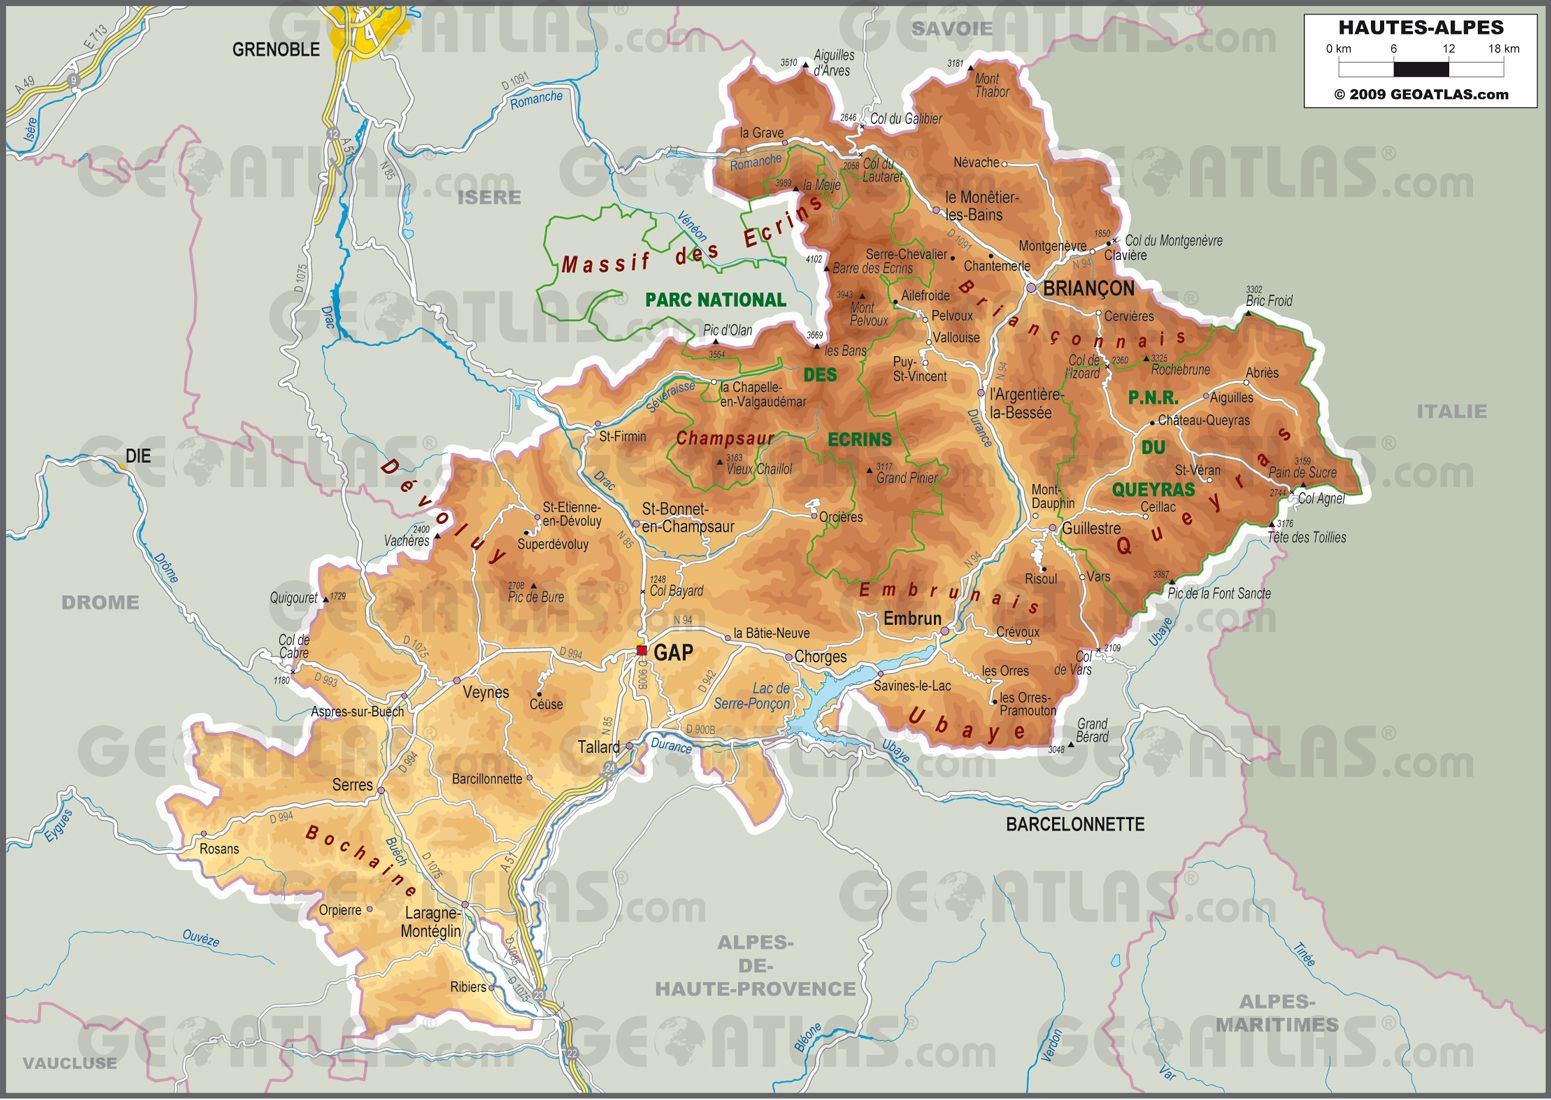 Hautes-Alpes carte